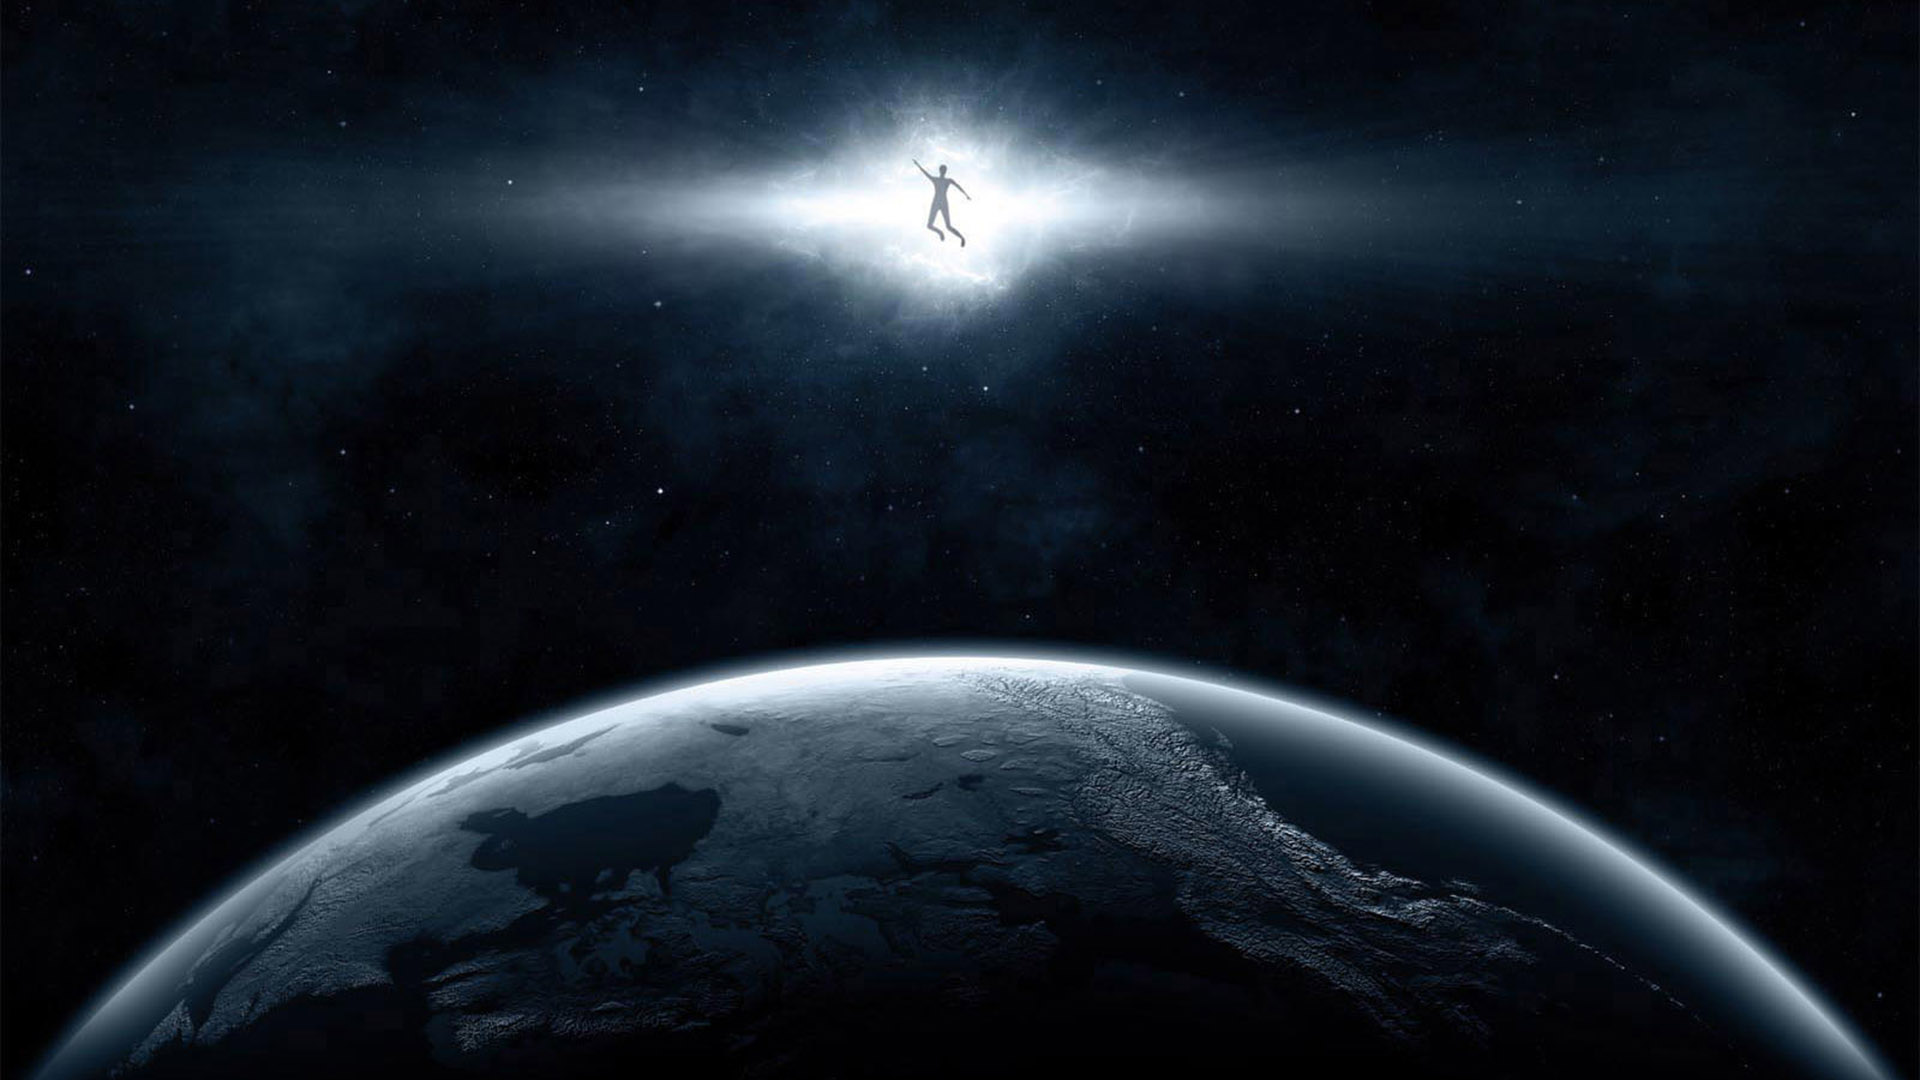 Hd Space Wallpapers 1080p: Hd Wallpapers 1080p